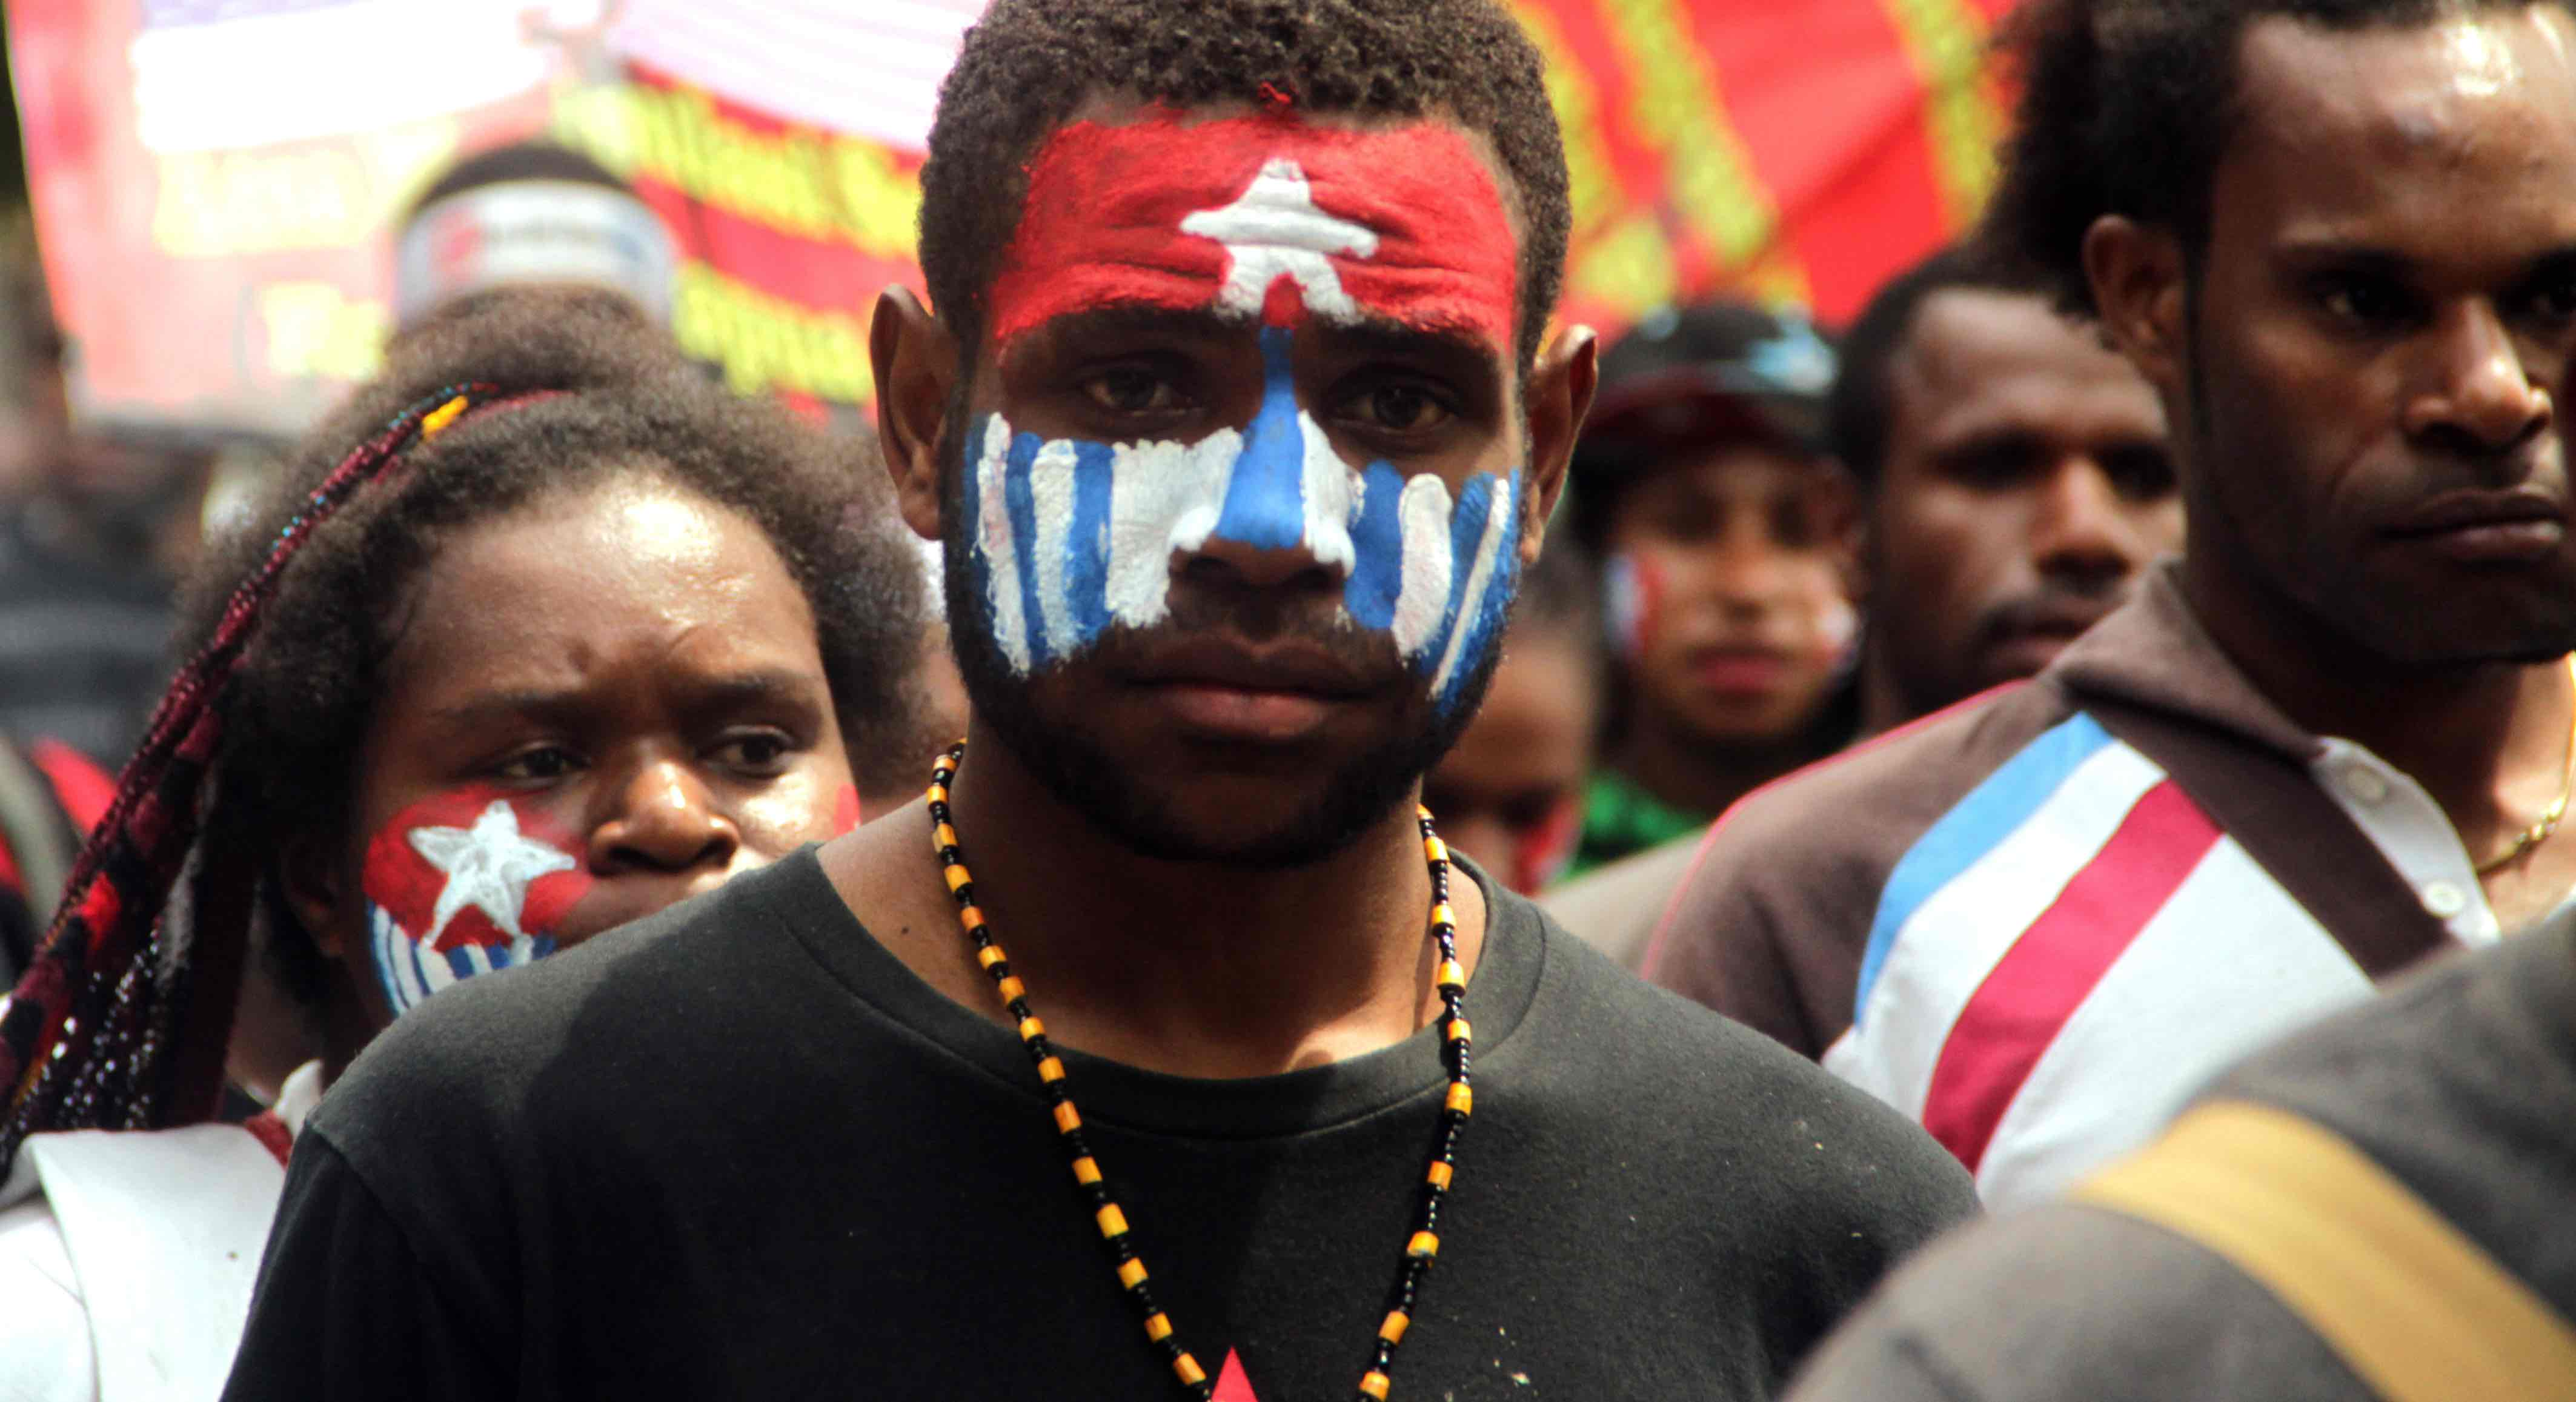 Students from the West Papua, Papua Student Alliance (AMP) demonstrate in Yogyakarta, Indonesia in 2014 (Photo: Slamet Riyadi/Getty)